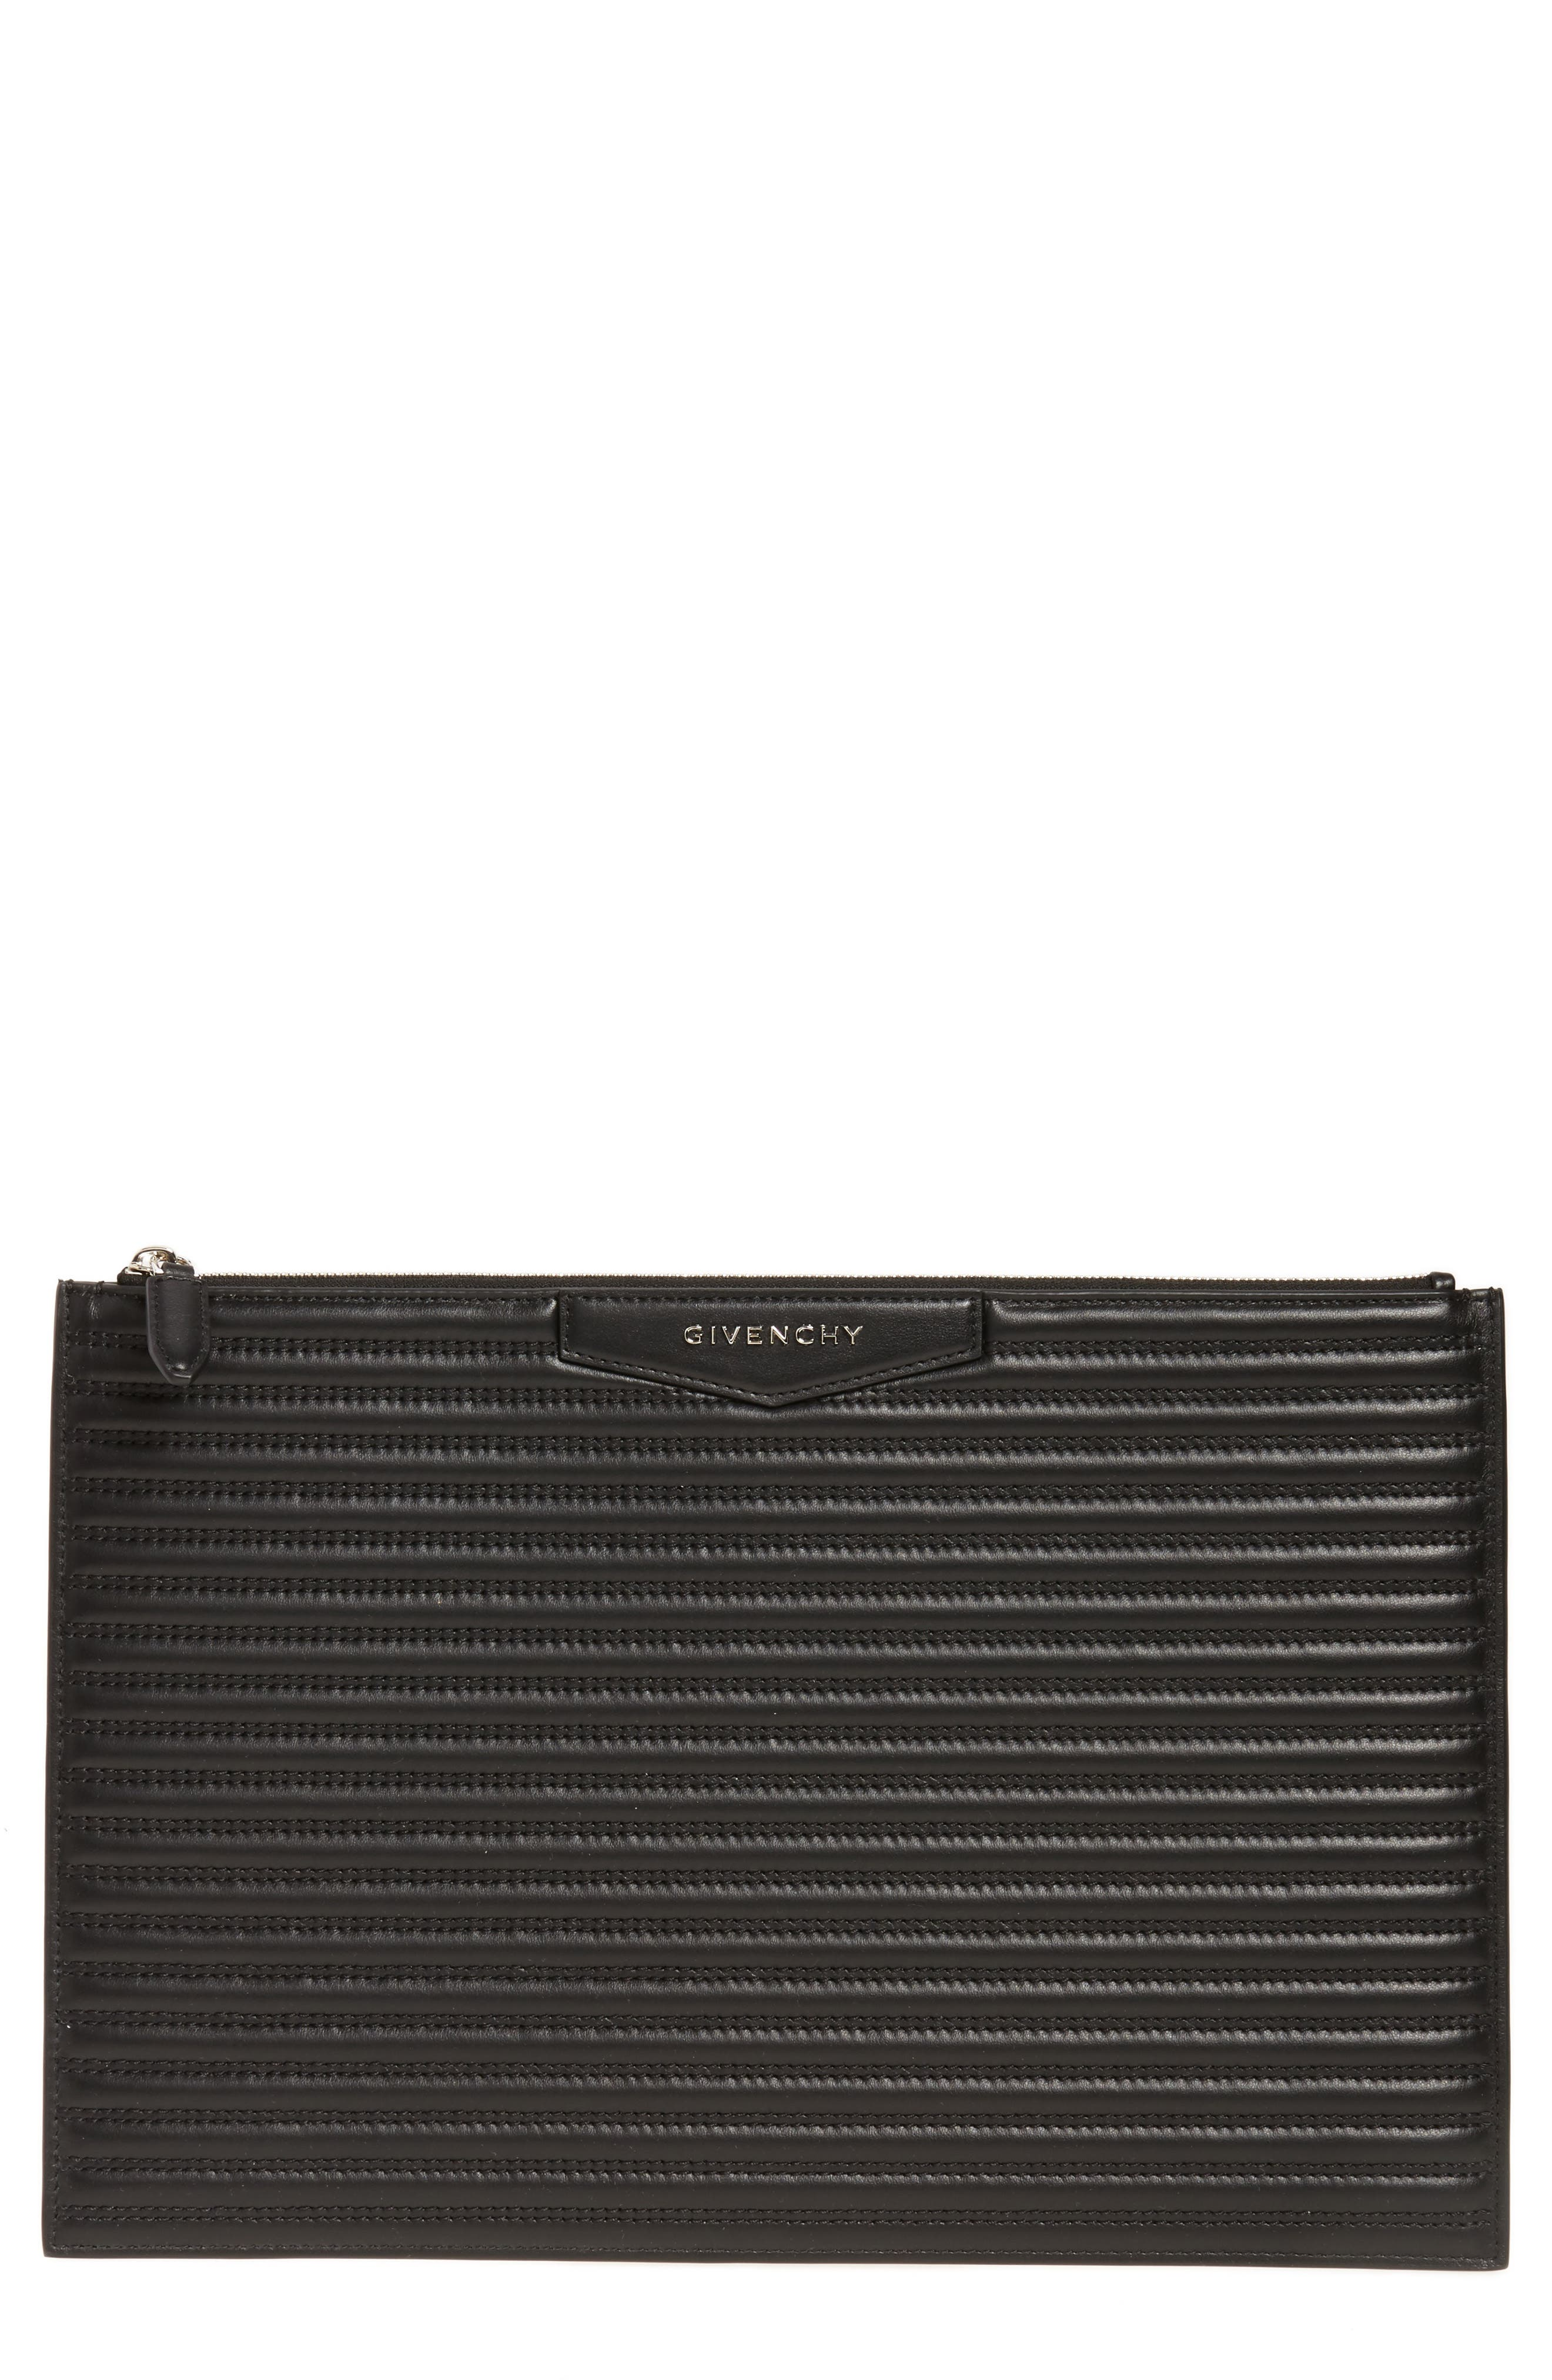 Givenchy Antigona Quilted Leather Pouch